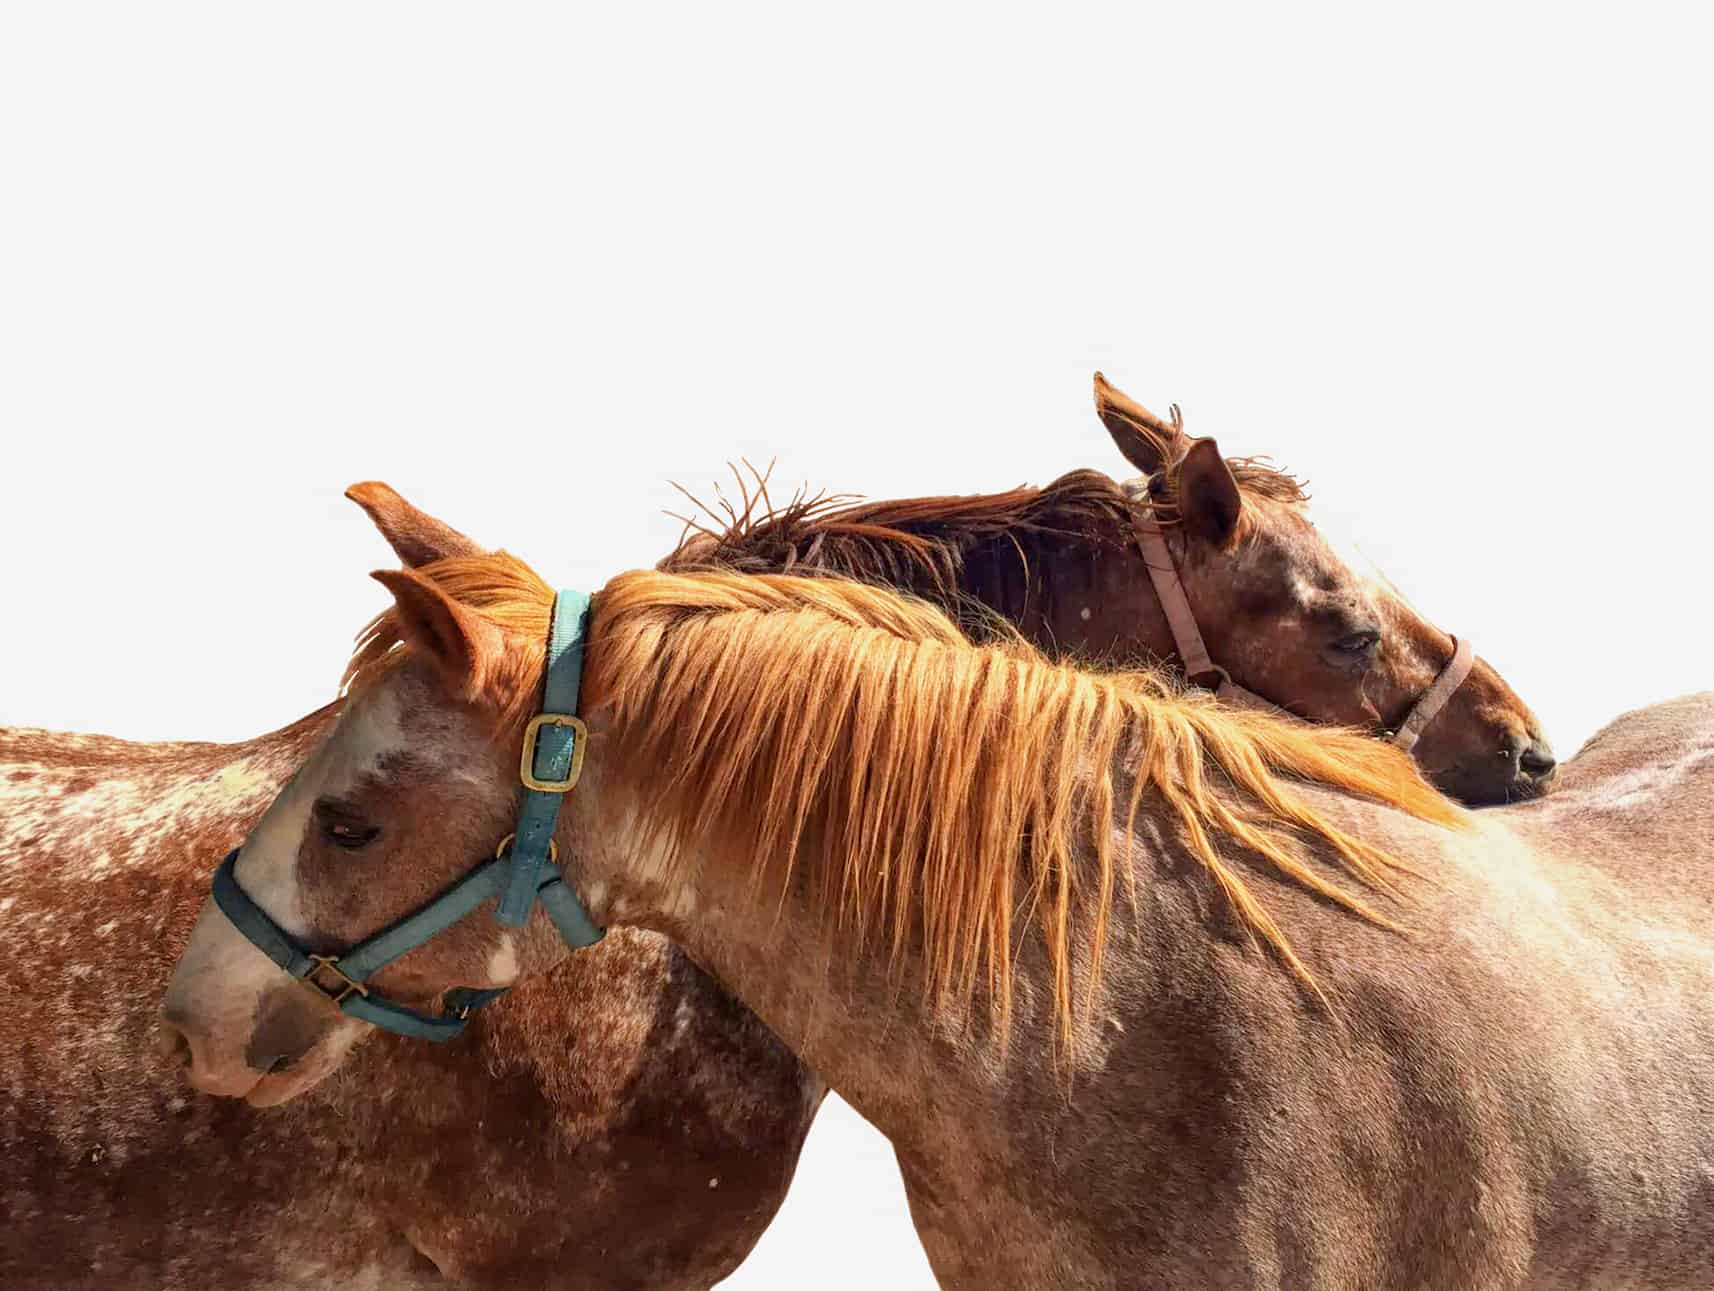 Two colorful horse friends standing head to tail, scratching each other's backs on a white background.